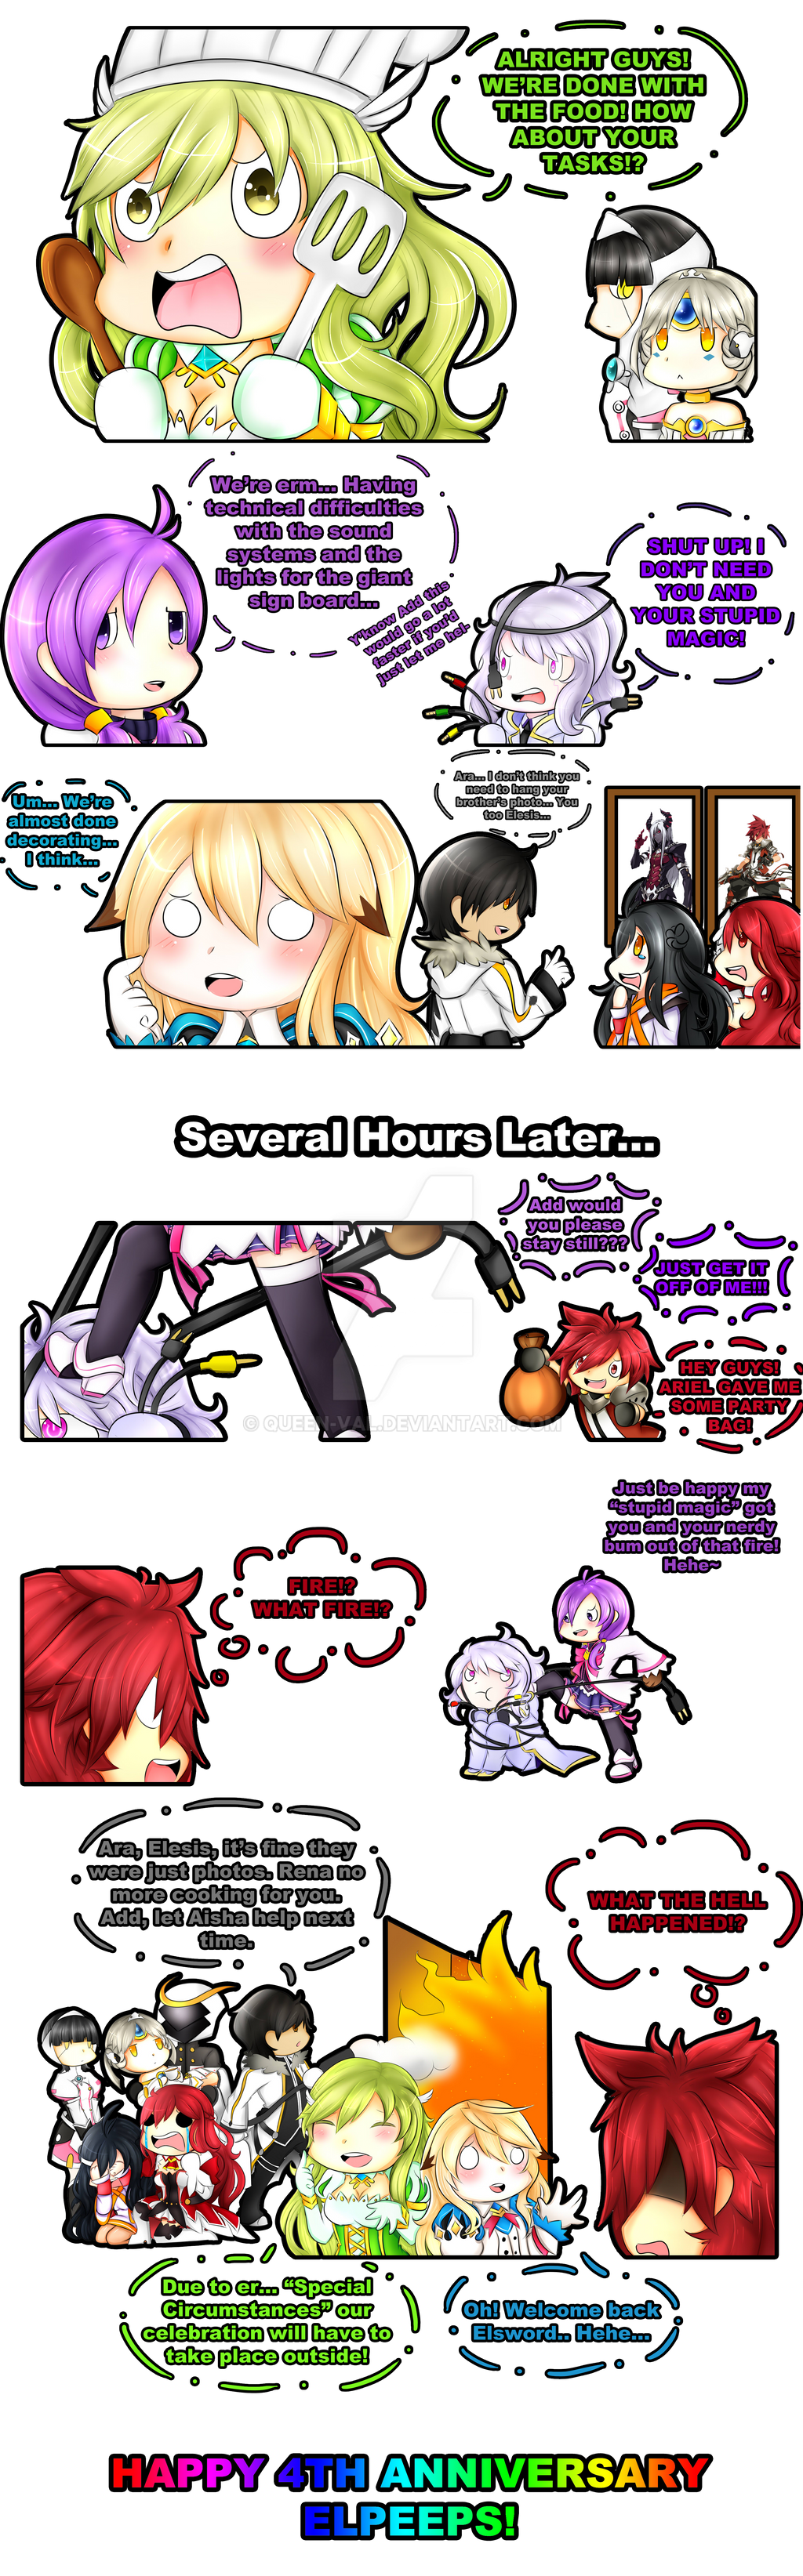 THE PARTY MUST GO ON! - Elsword's 4th Anniversary by queen-val